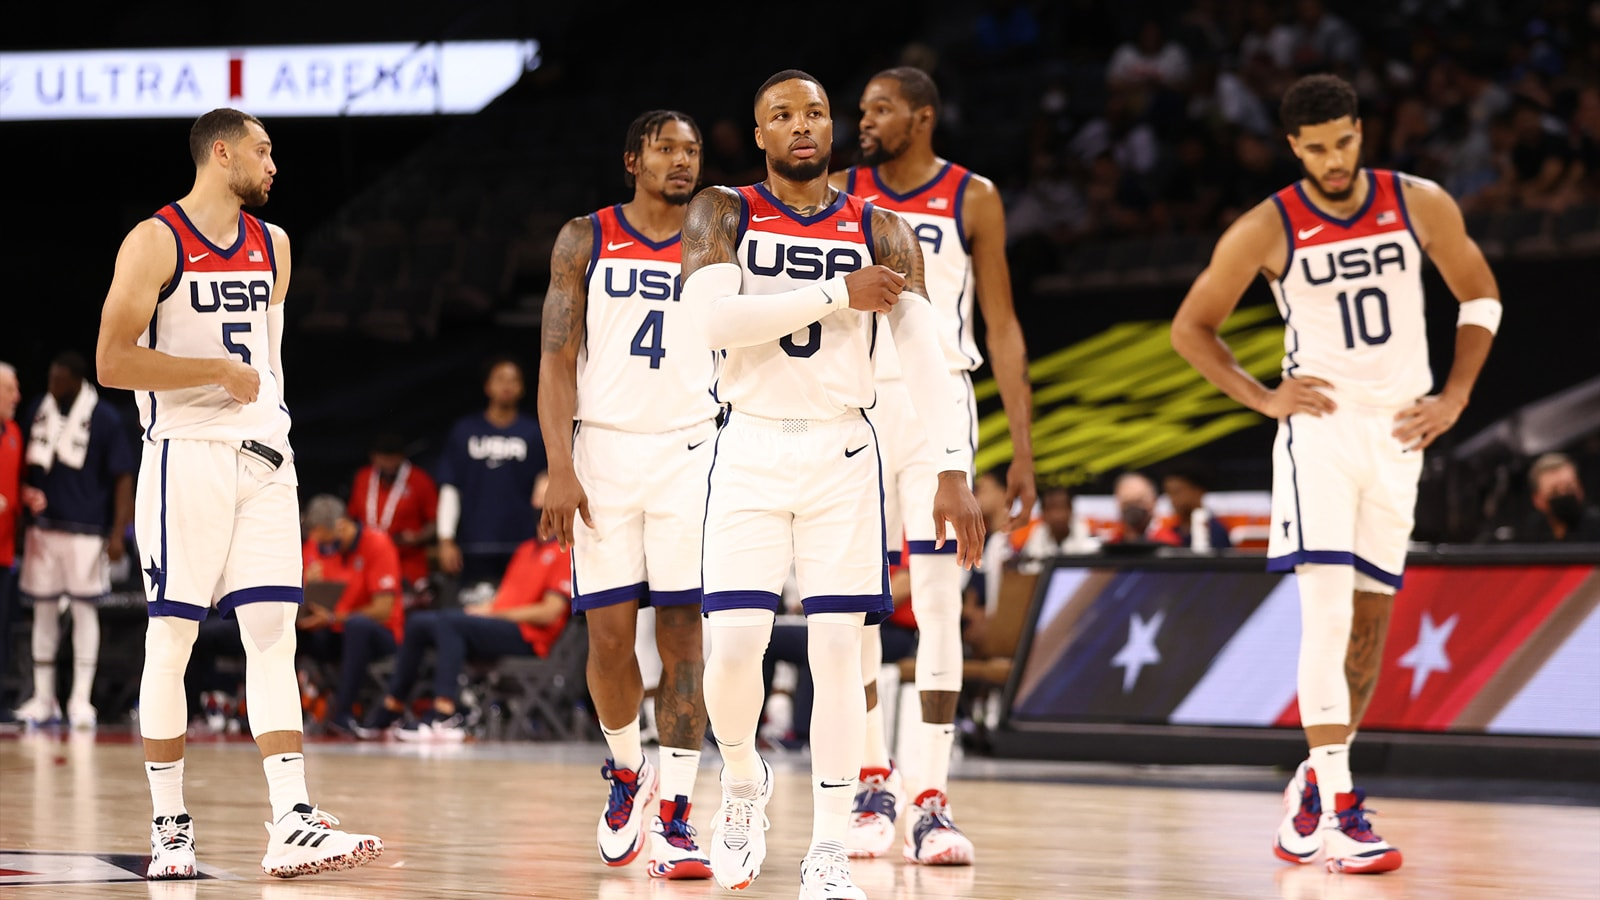 Team USA walking on the court